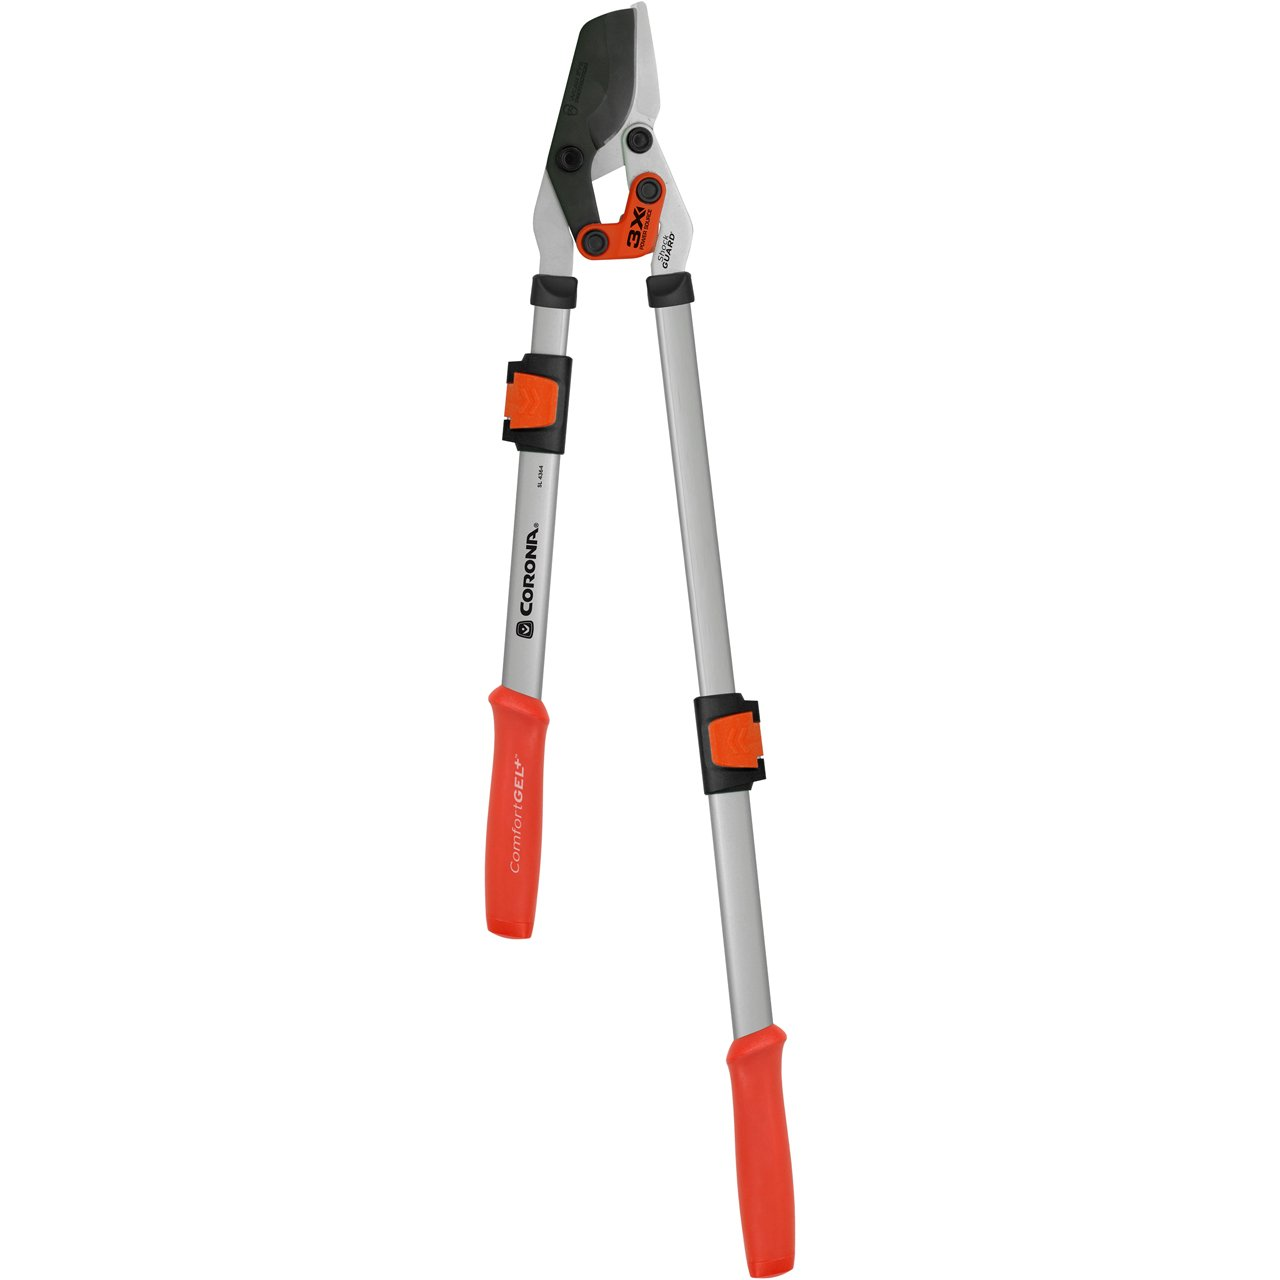 "Corona SL4364 DualLINK with ComfortGEL Grip Extendable Heavy Duty Bypass Limb and Branch Lopper, Cuts Up to 3/4"", SL 4364"